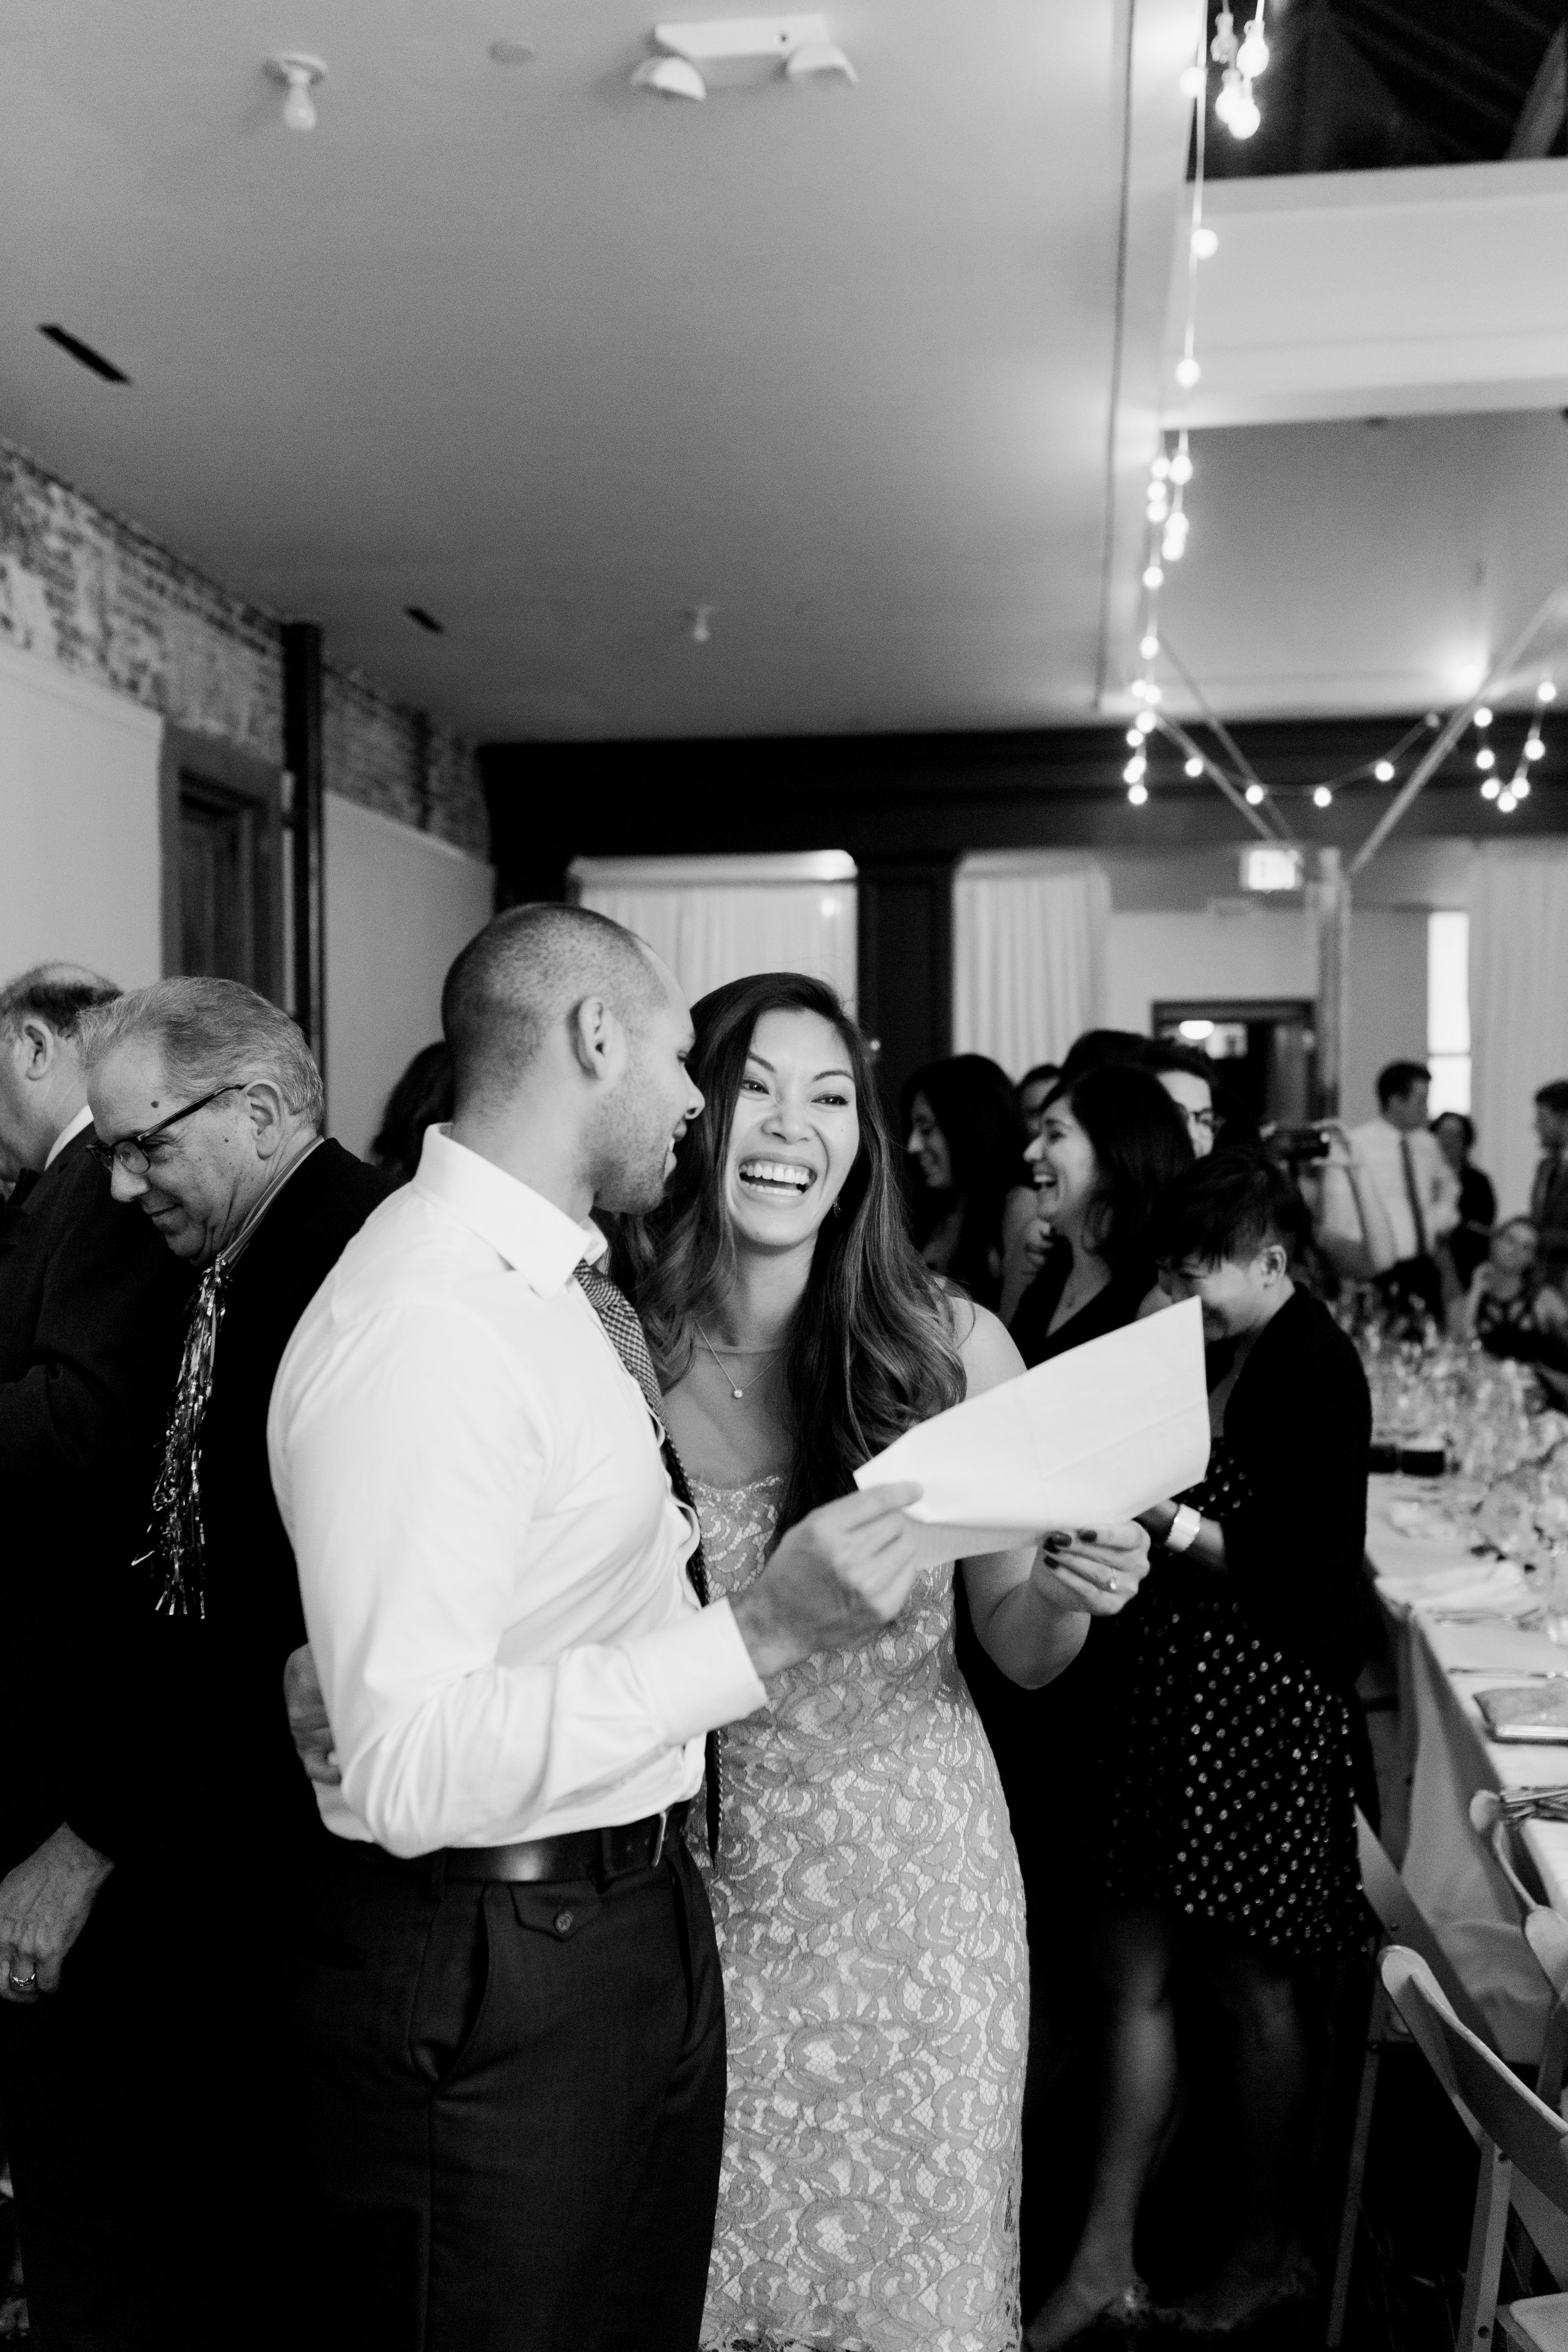 style-inspired-wedding-at-firehouse-8-in-san-francisco-92.jpg